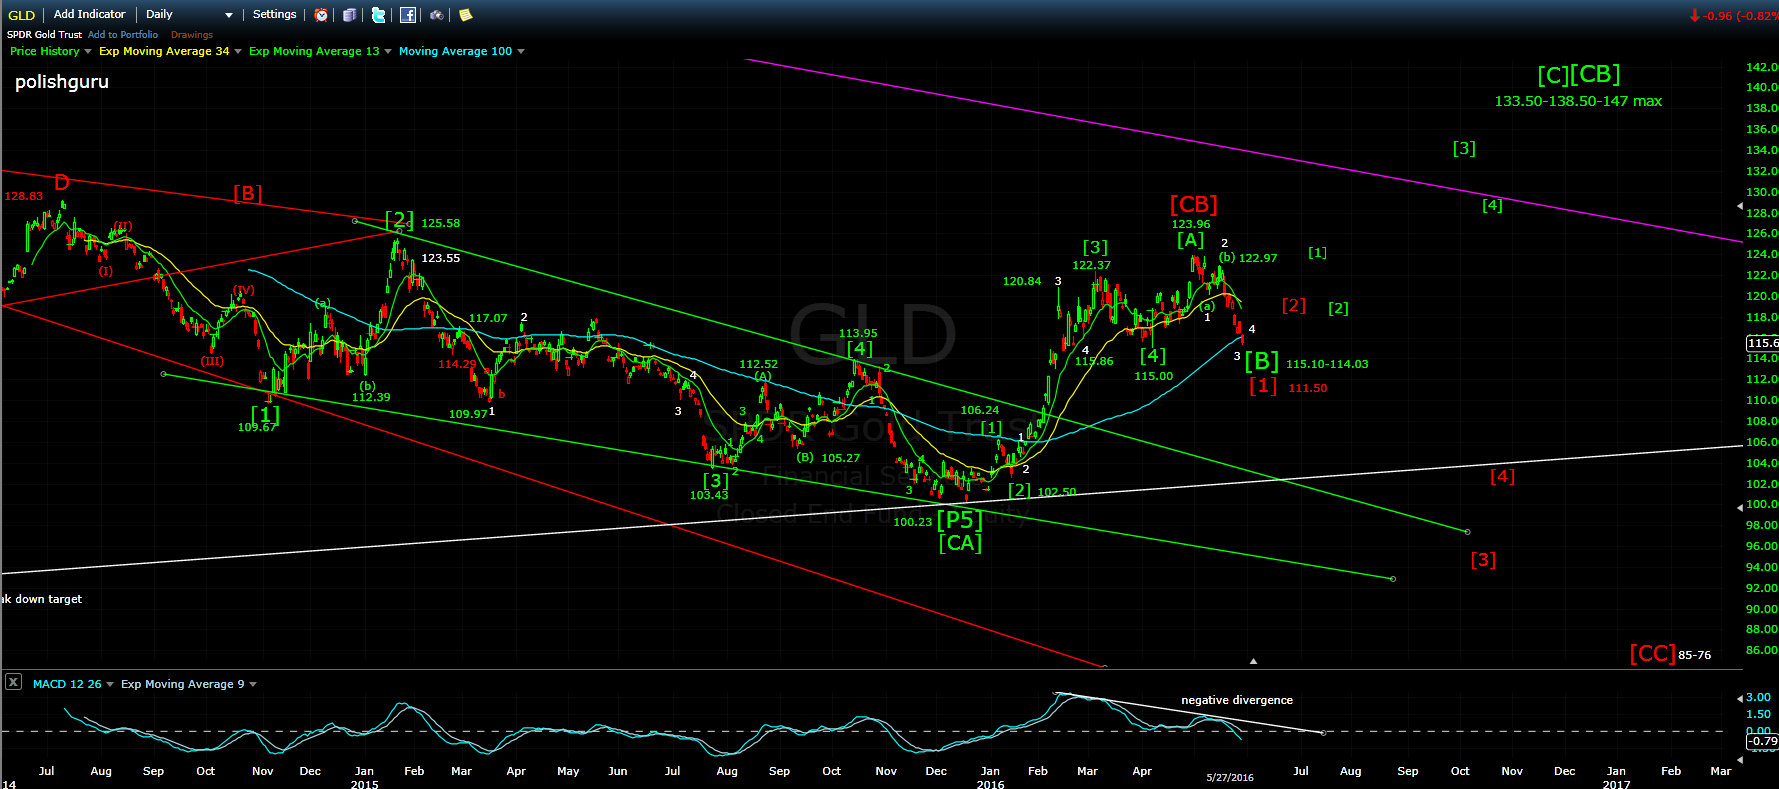 GLD friday